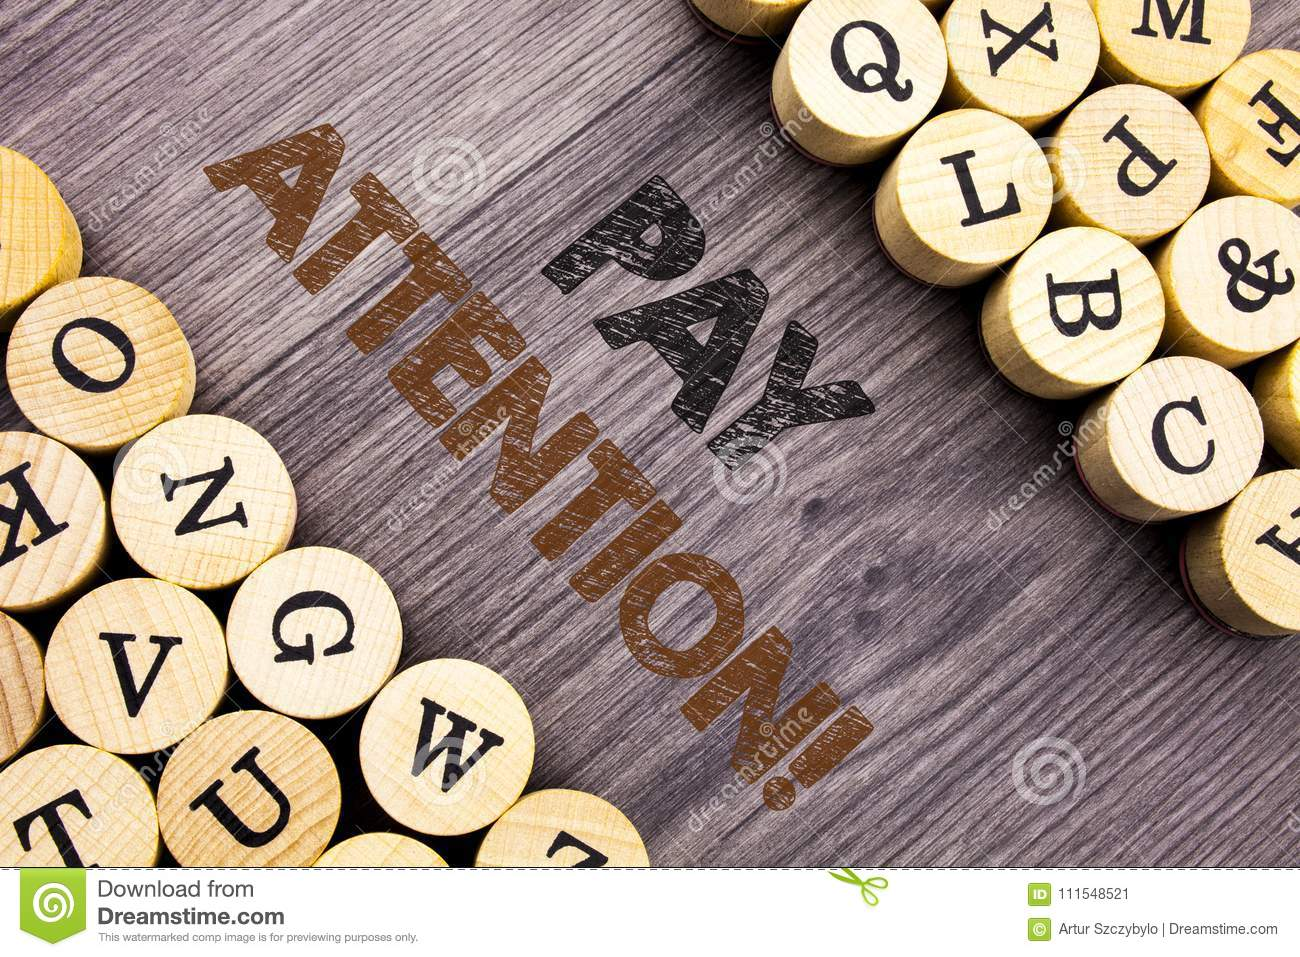 Conceptual hand writing text showing Pay Attention. Concept meaning Be Careful Beware Mindful Alarm written on wooden abckground w